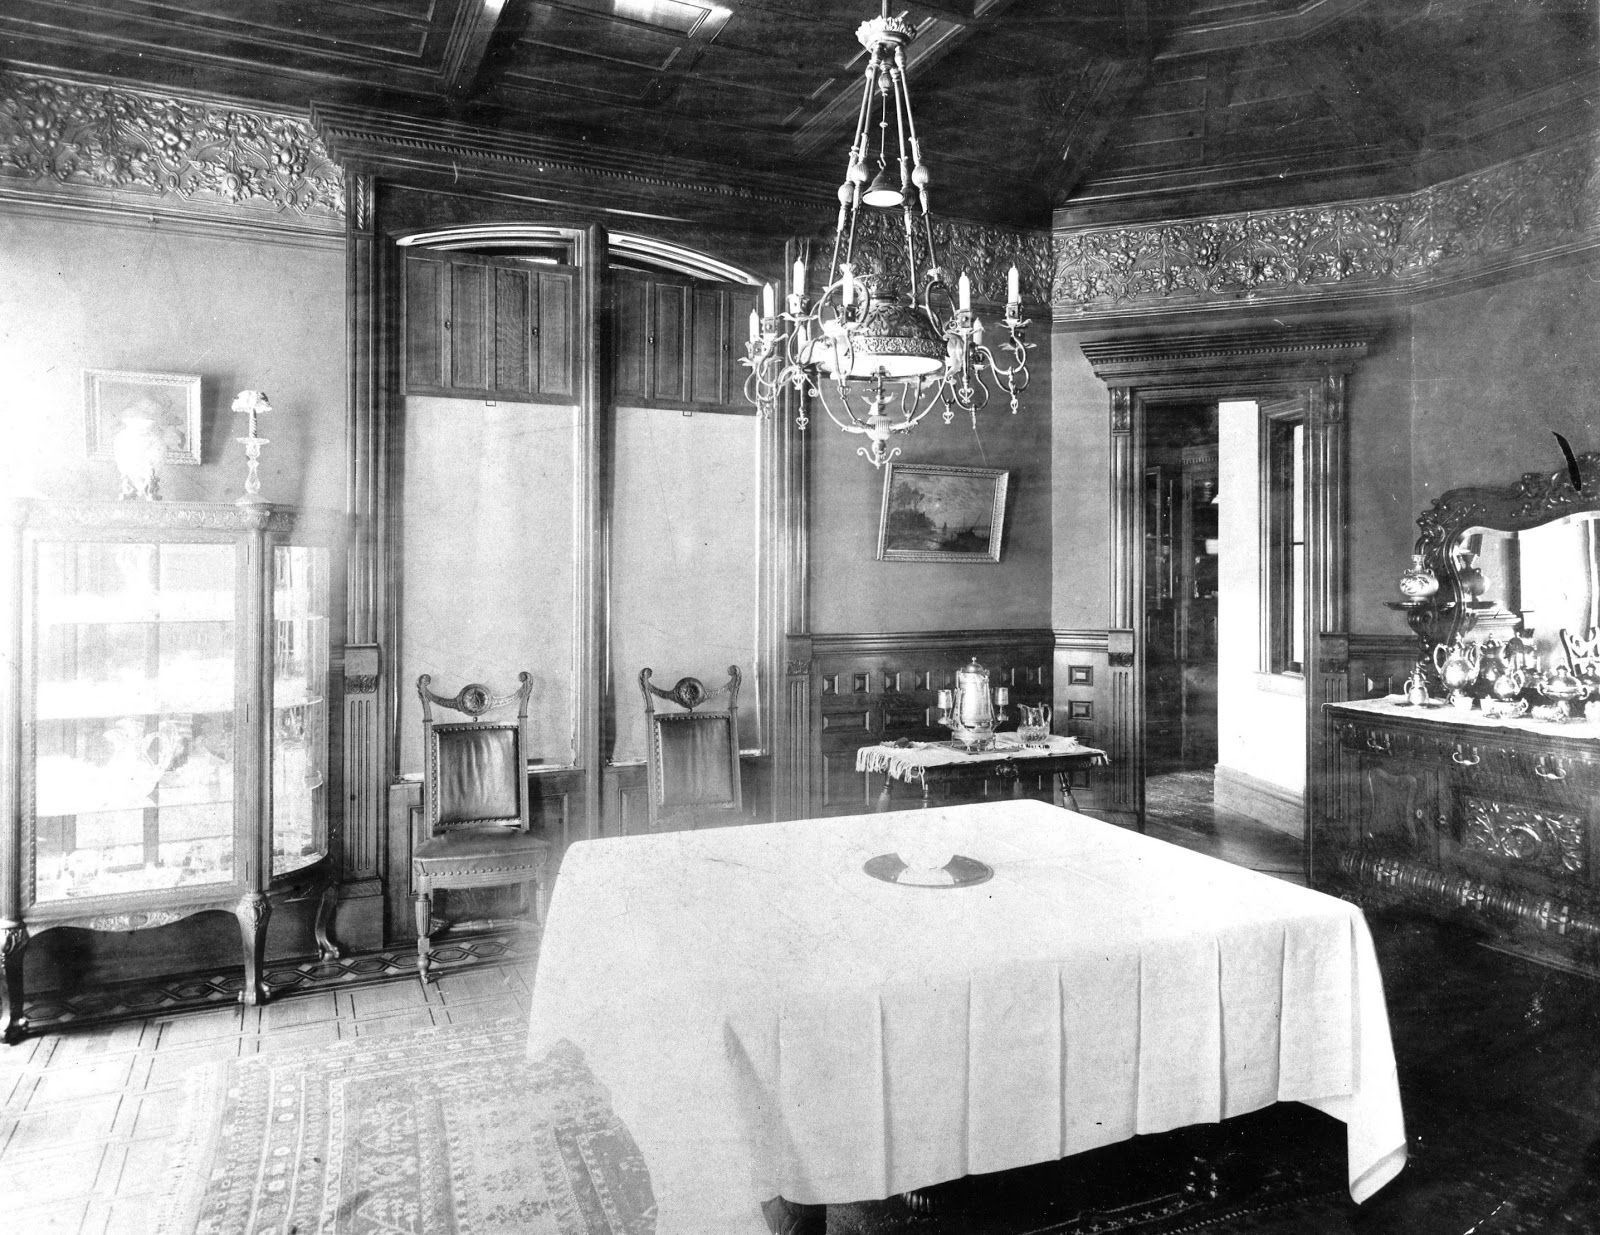 Victorian era interior - Find This Pin And More On Victorian